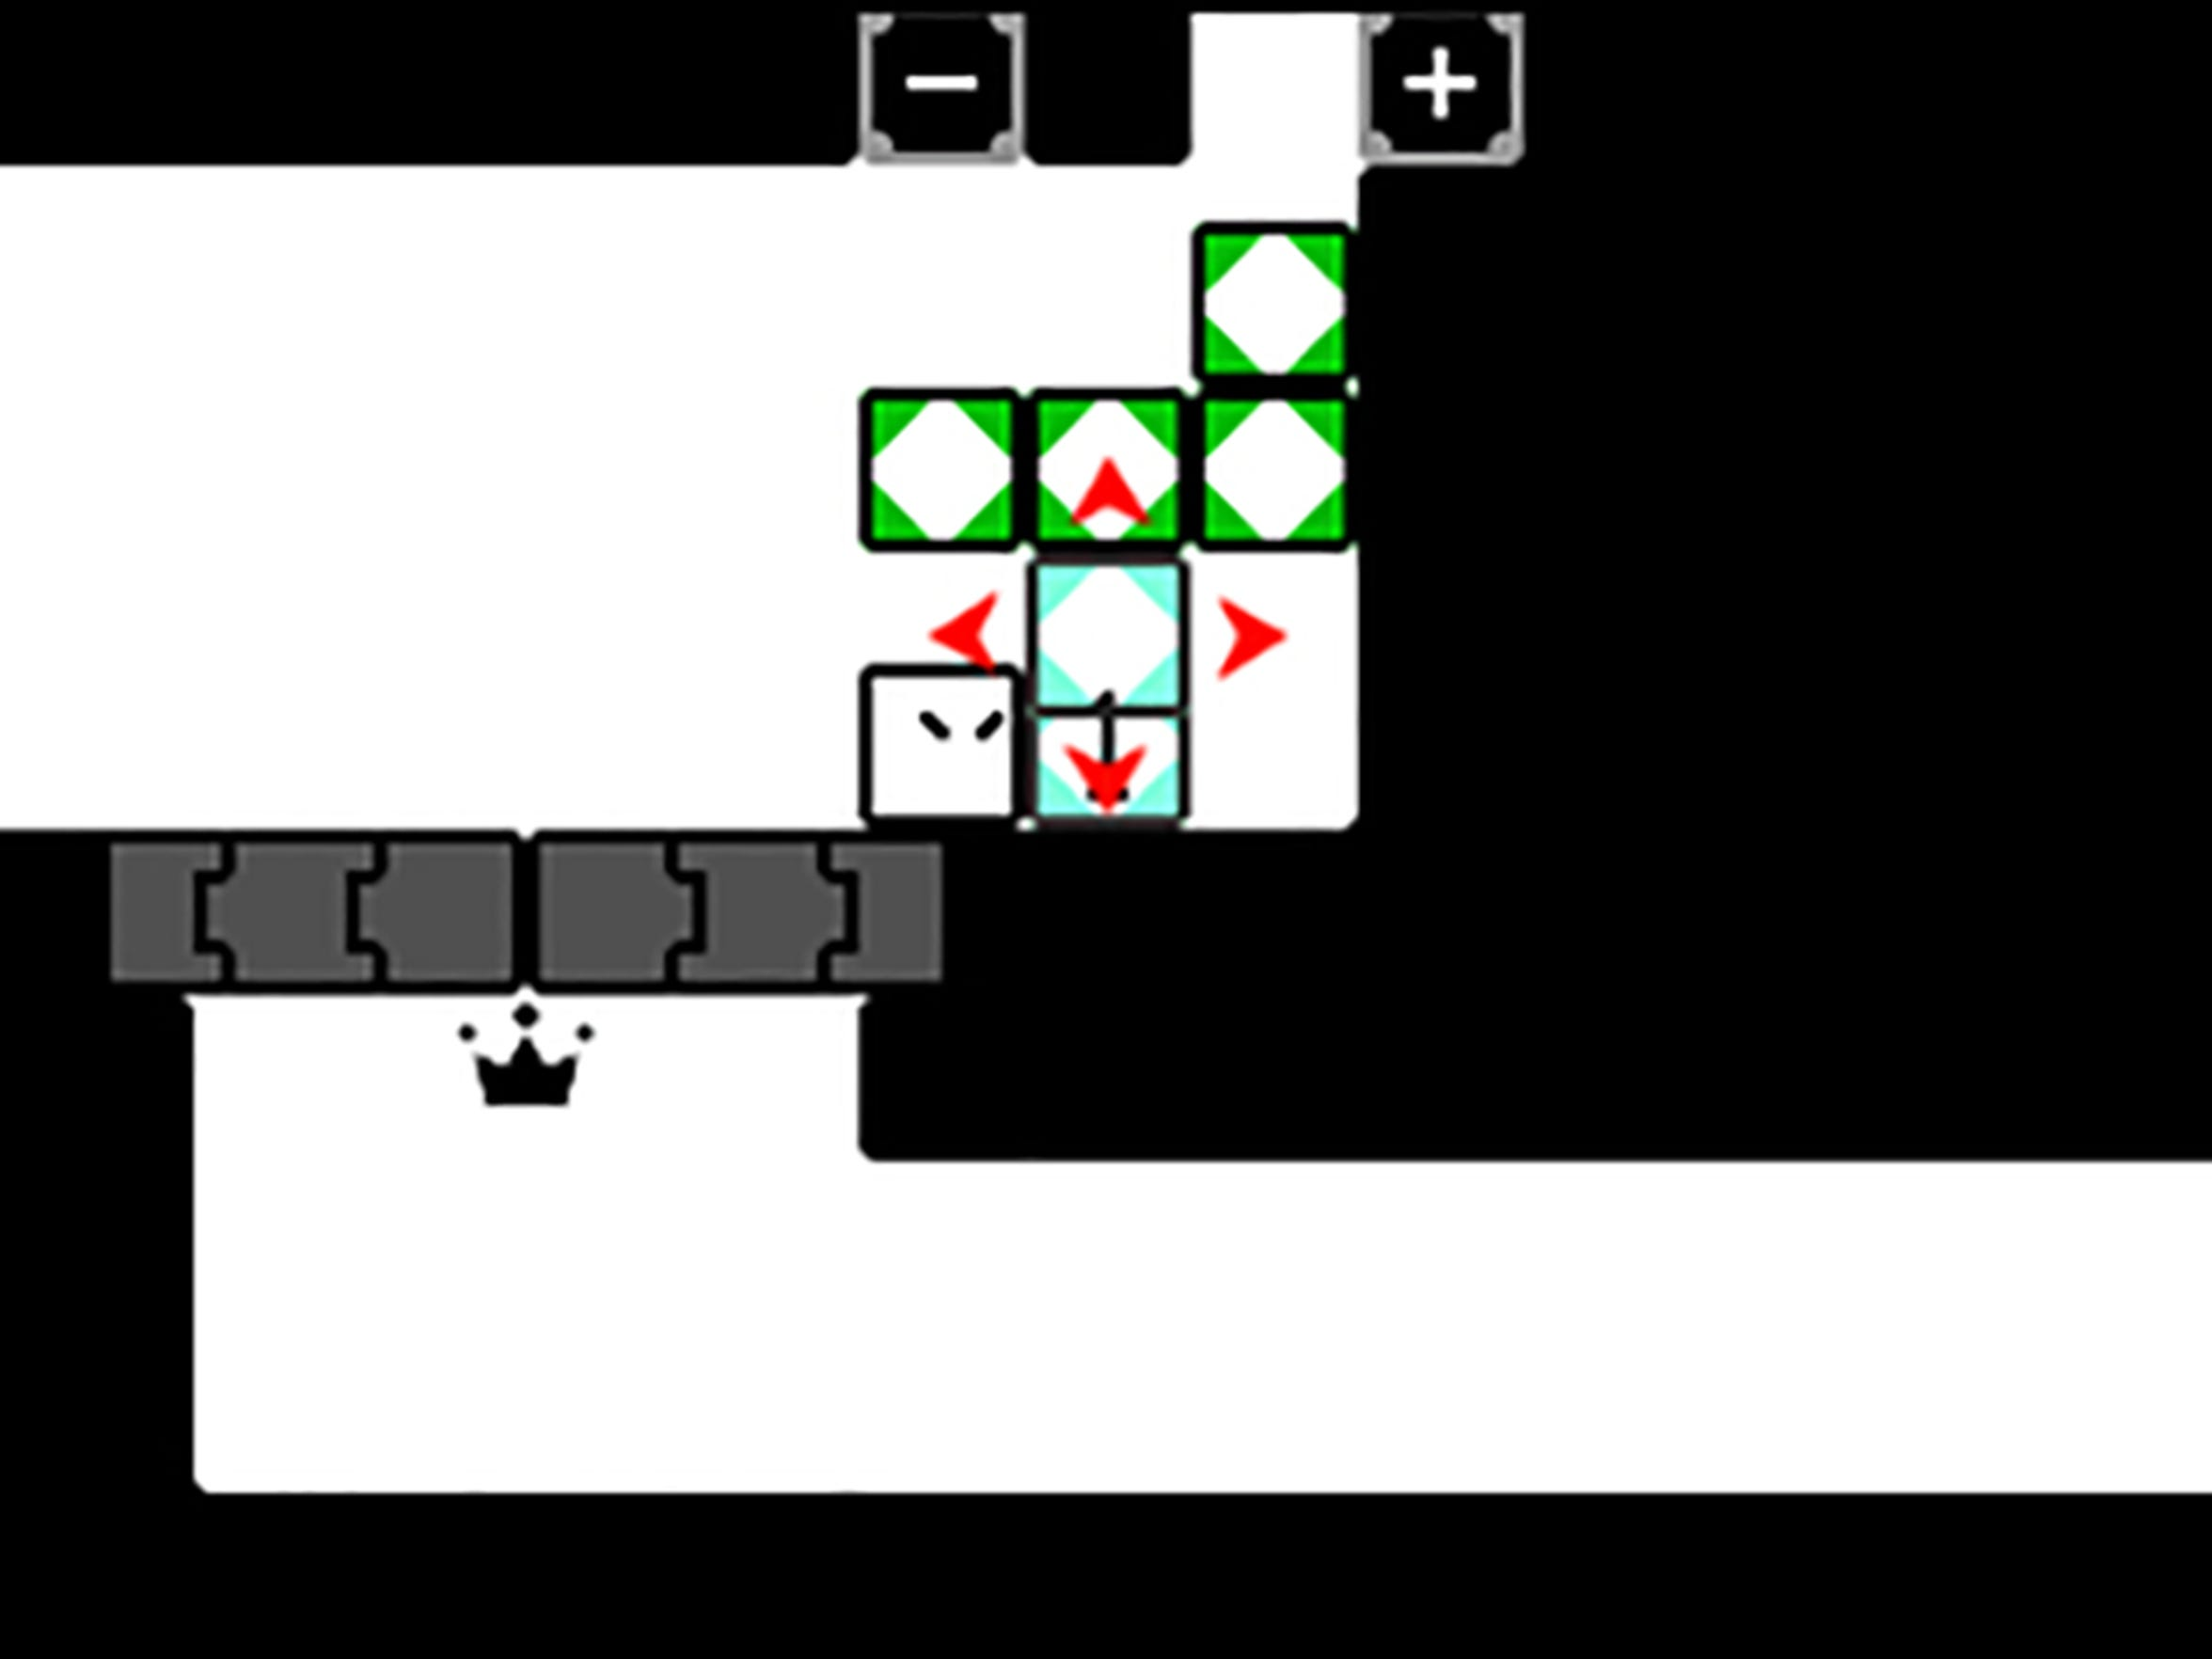 Qbby gains new abilities in BoxBoxBoy!